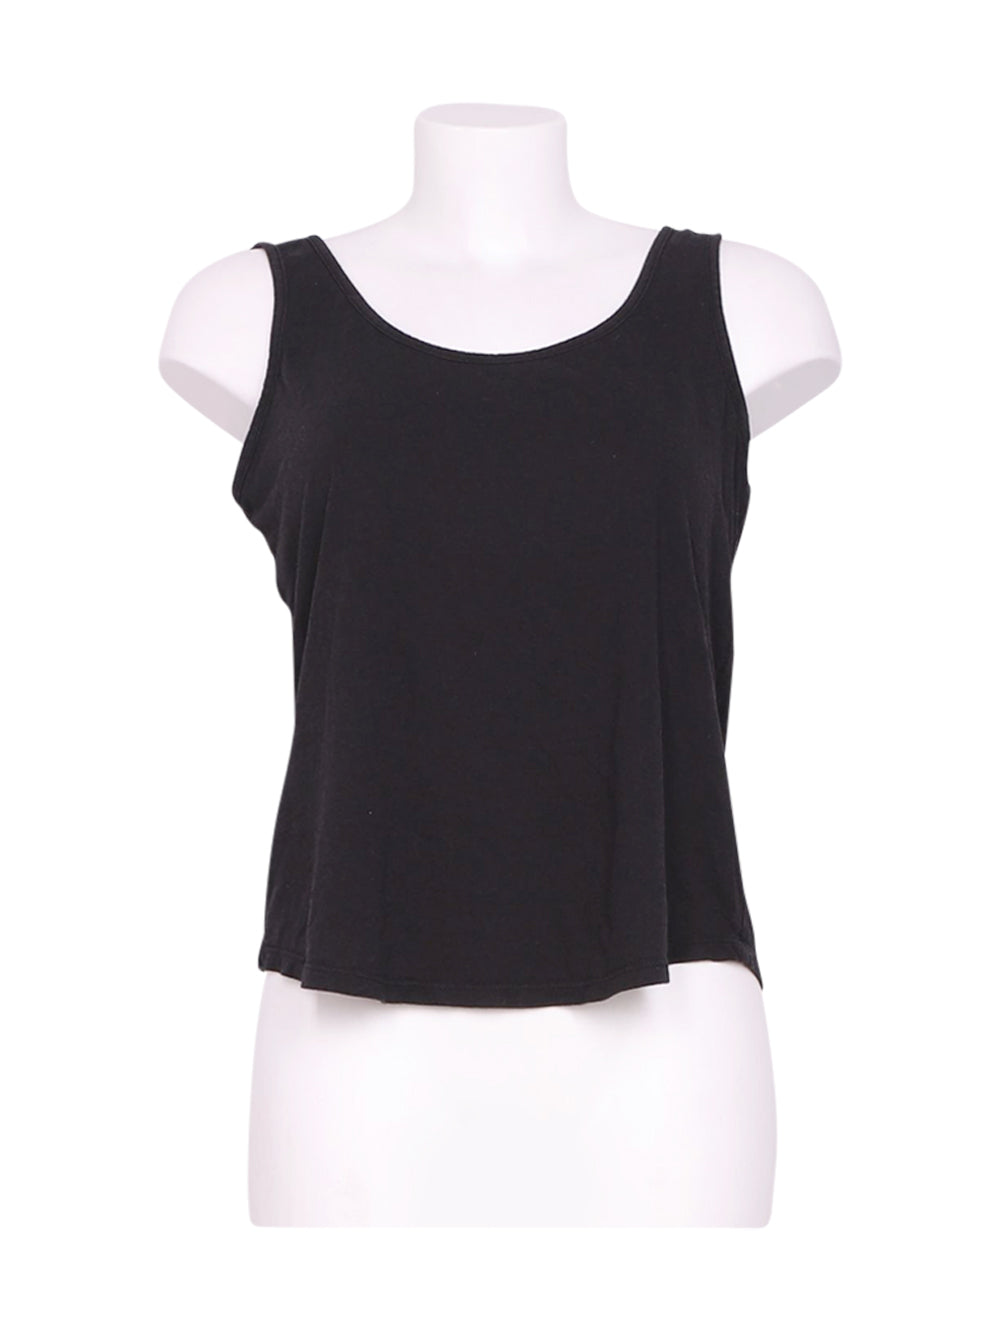 Front photo of Preloved Asos Black Woman's sleeveless top - size 10/M